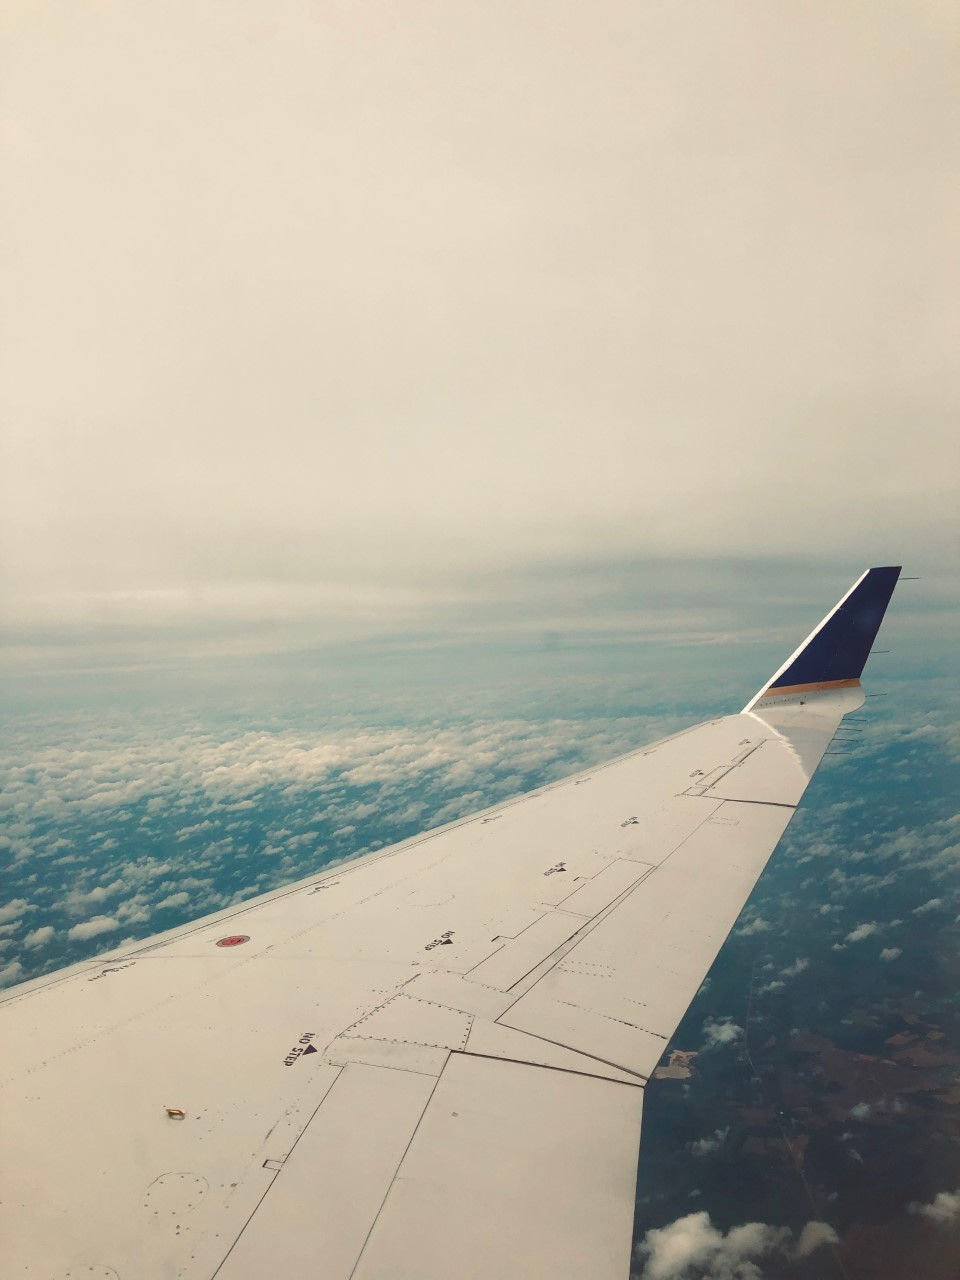 the view from a plane window